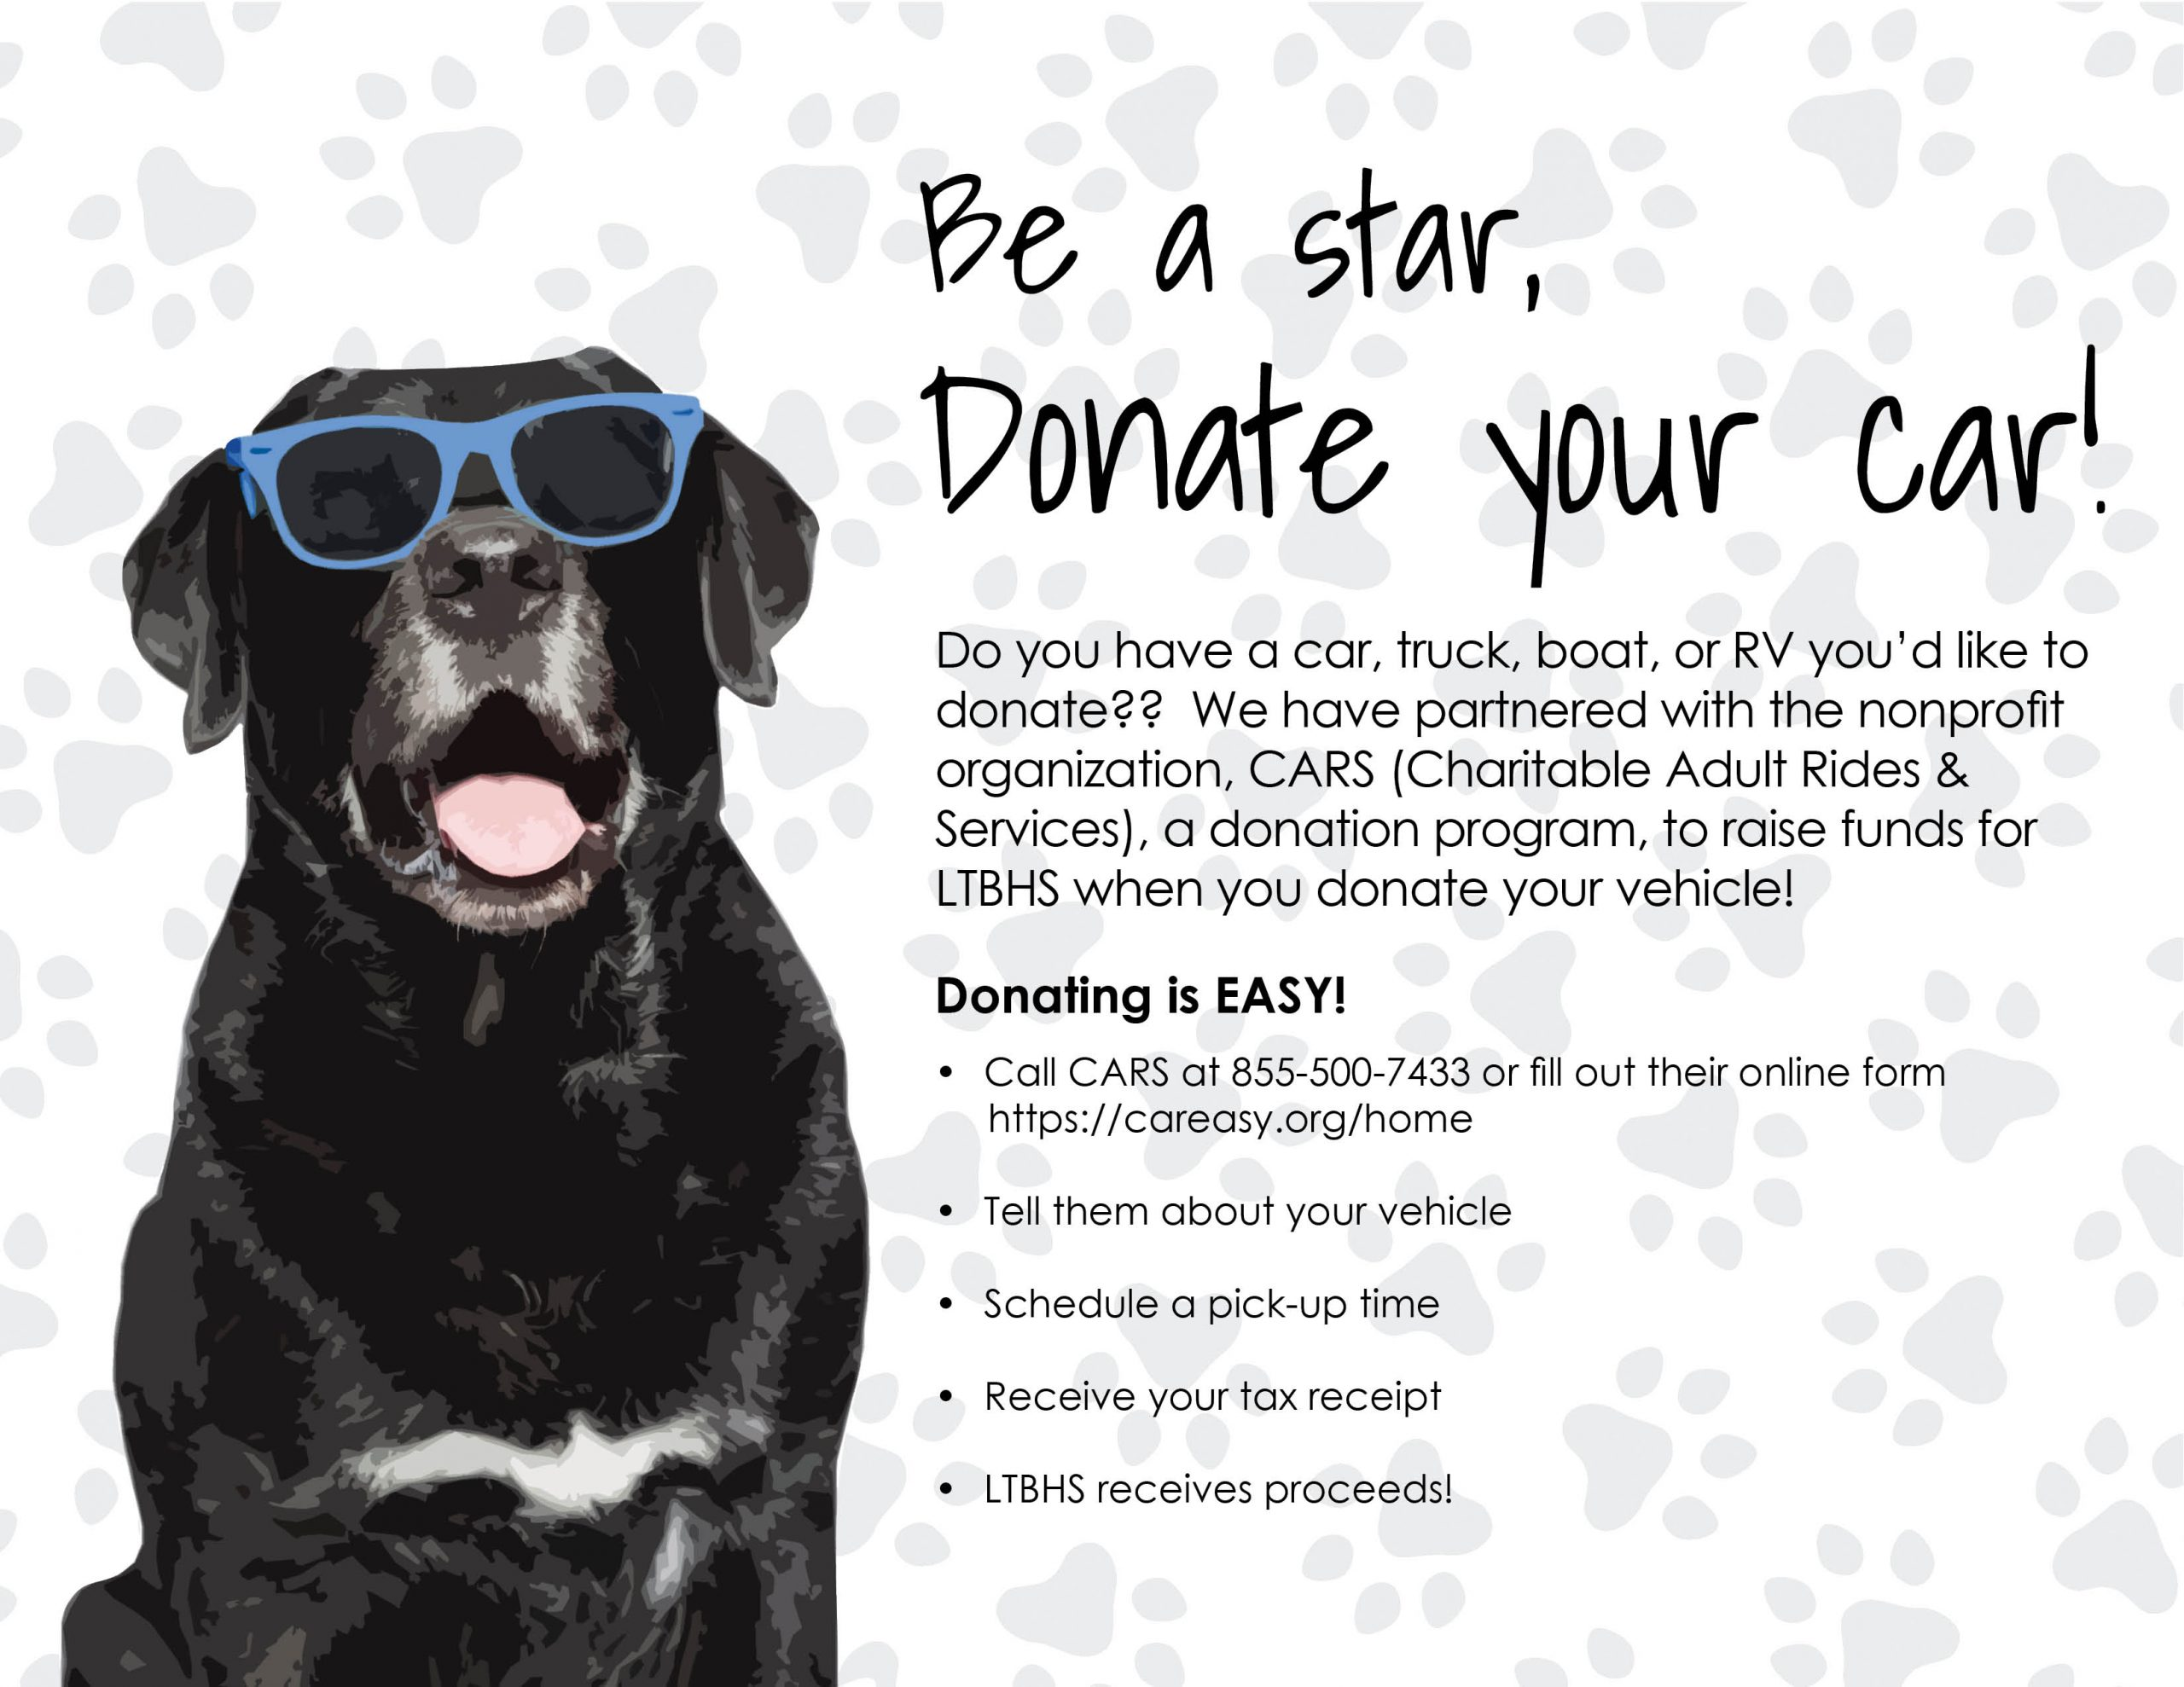 Be a star donate your car